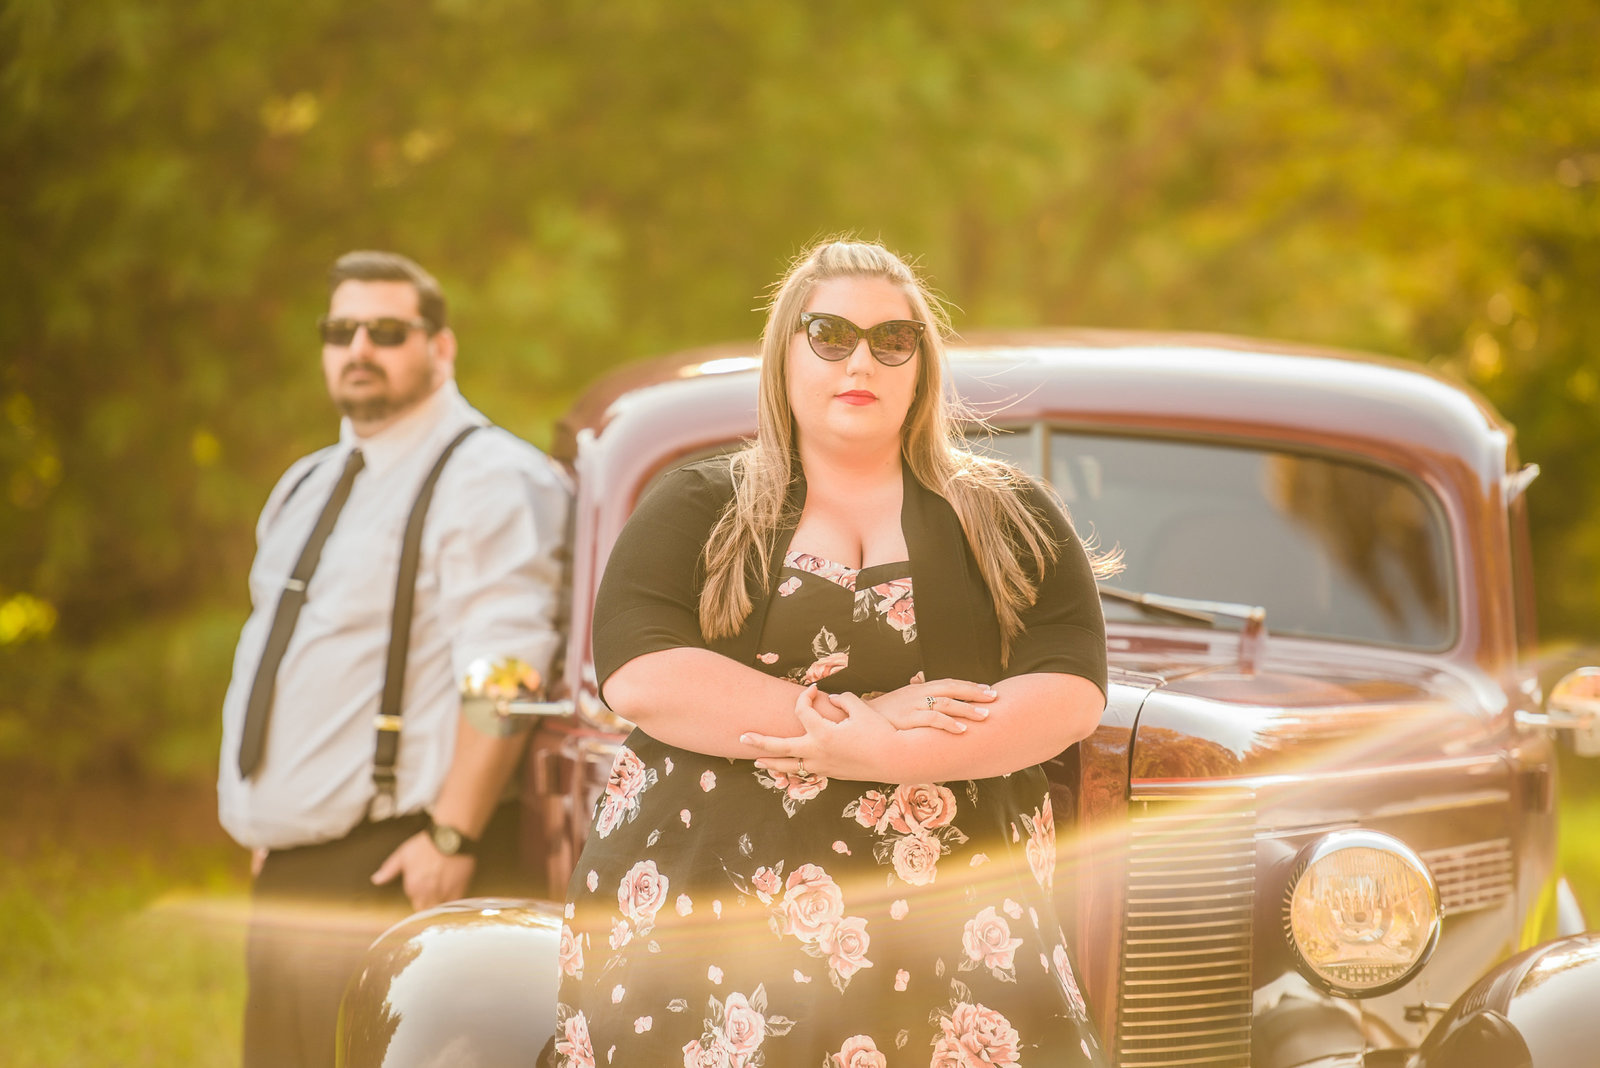 Retro_Pinup_Car_engagement_session_Nj016